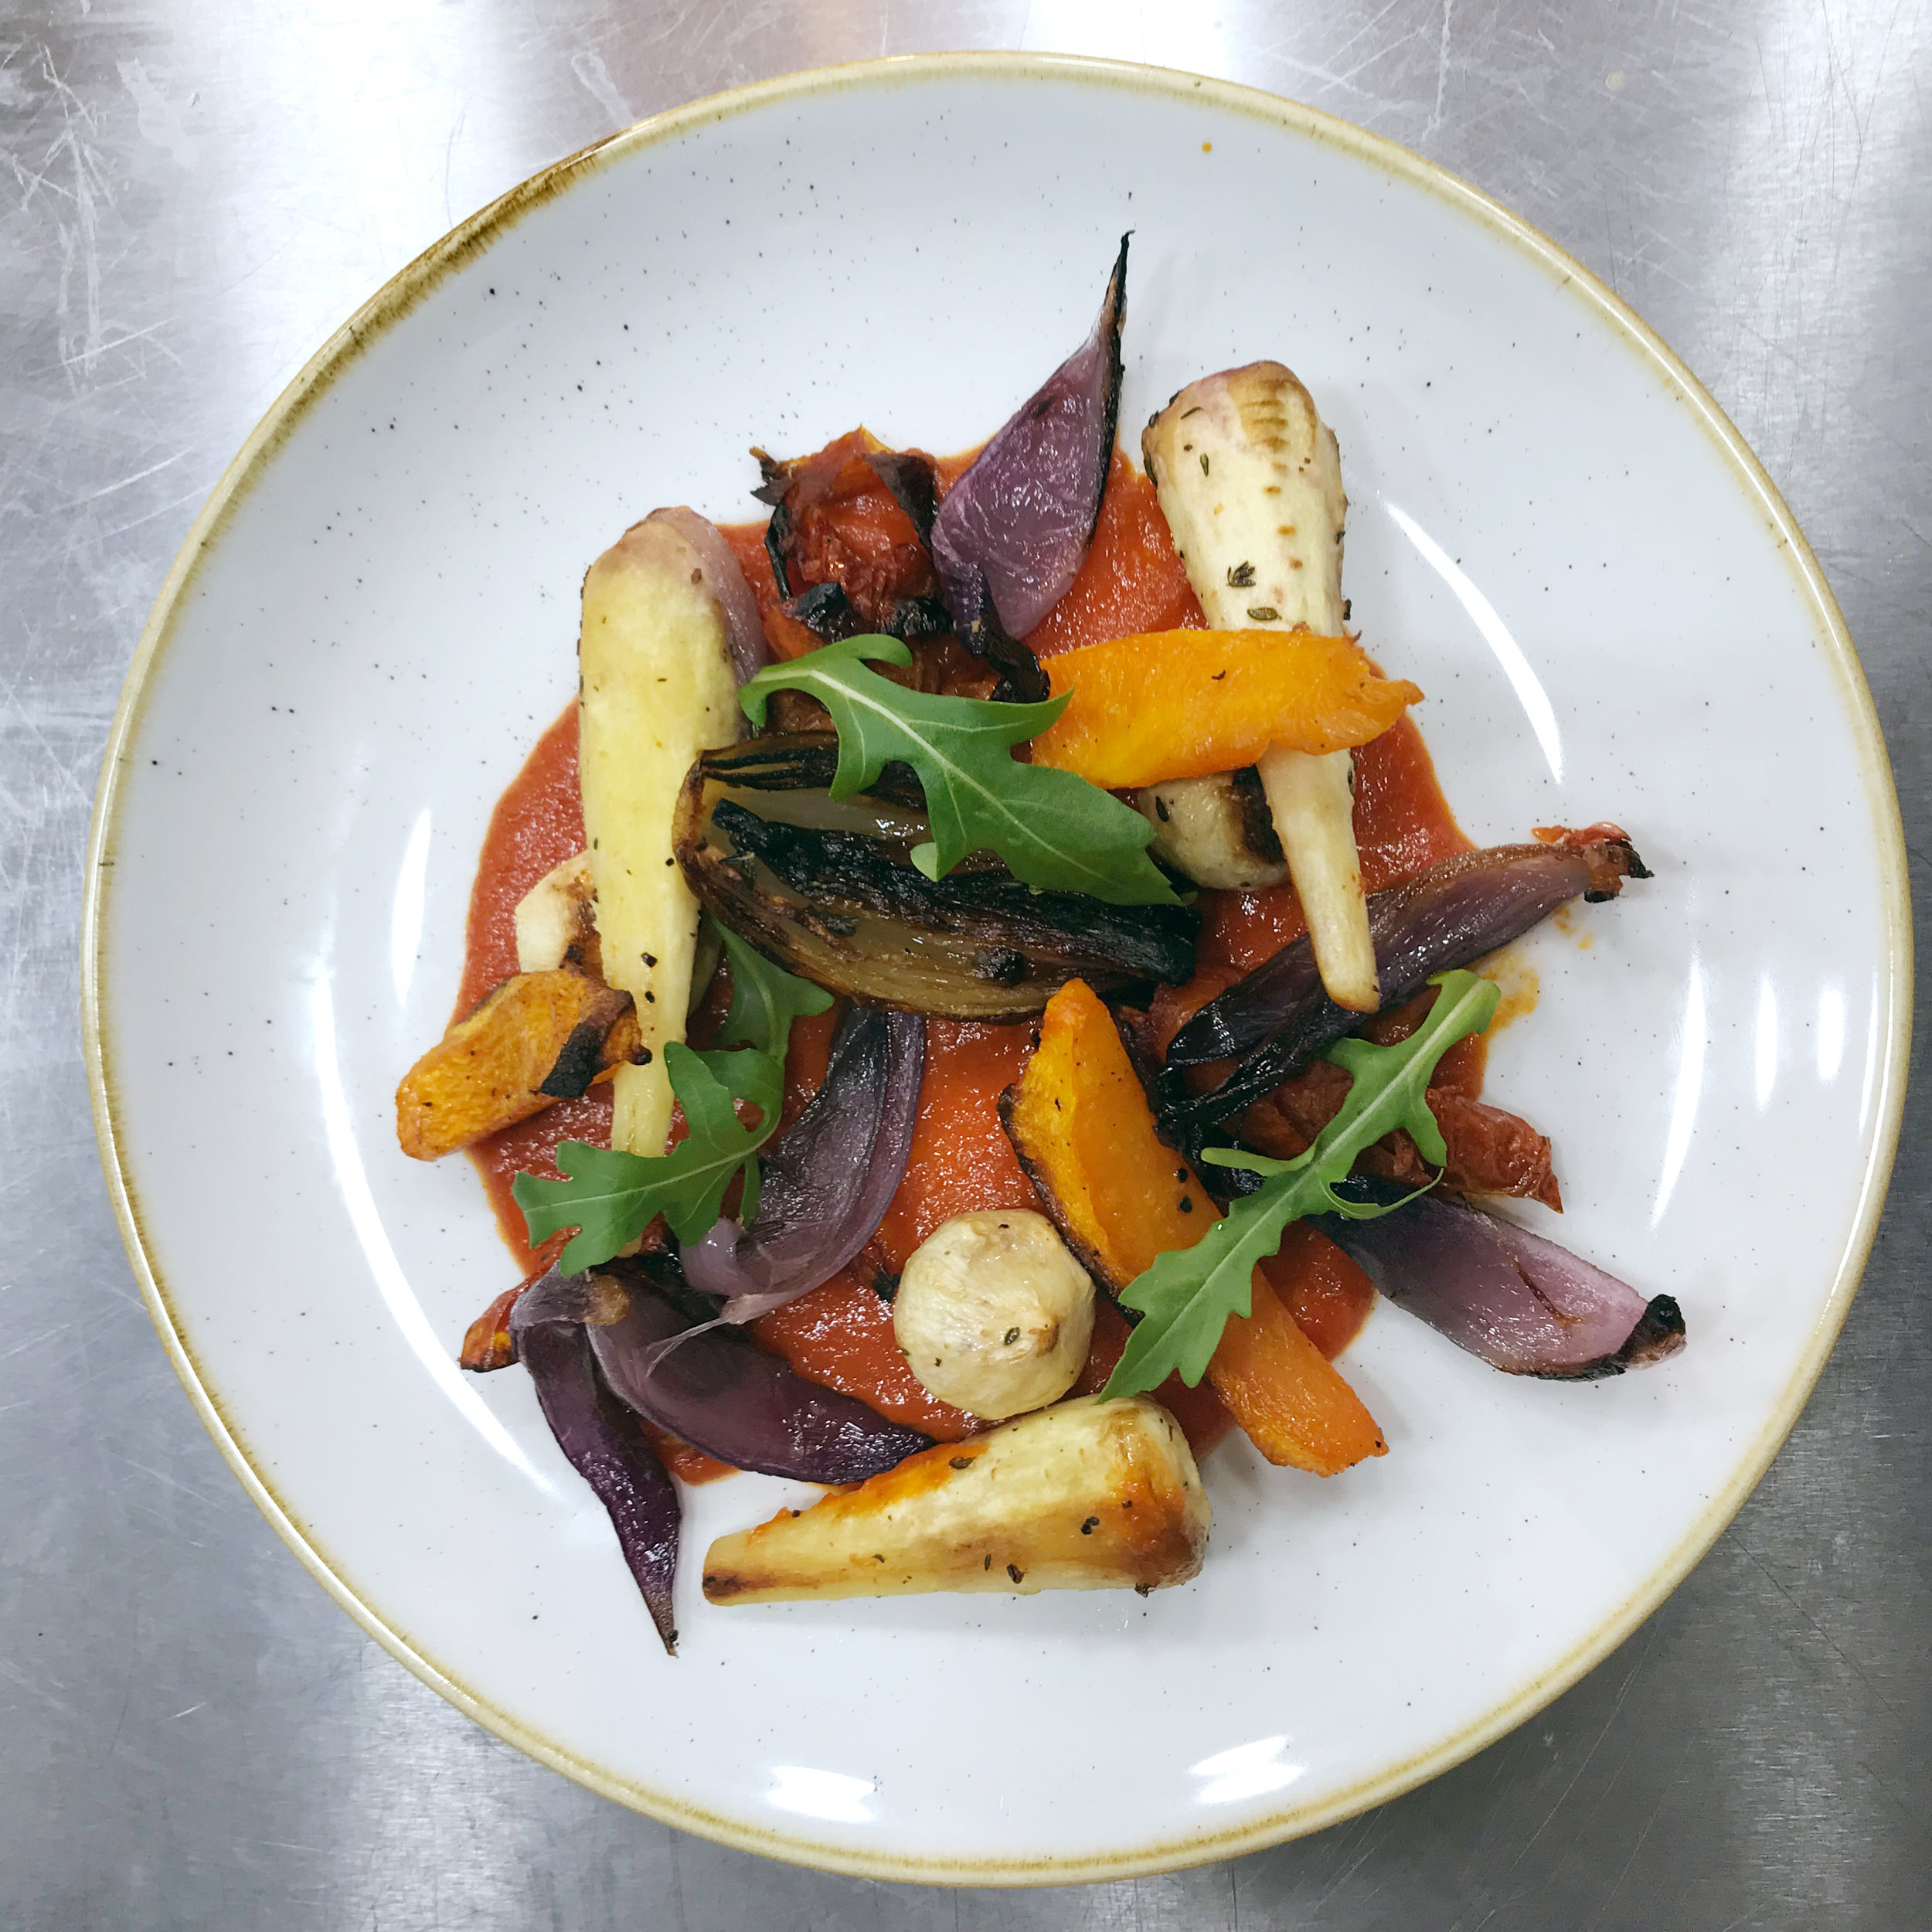 Treviskers-Roasted-WInter-Root-Vegetables-Vegan.jpg